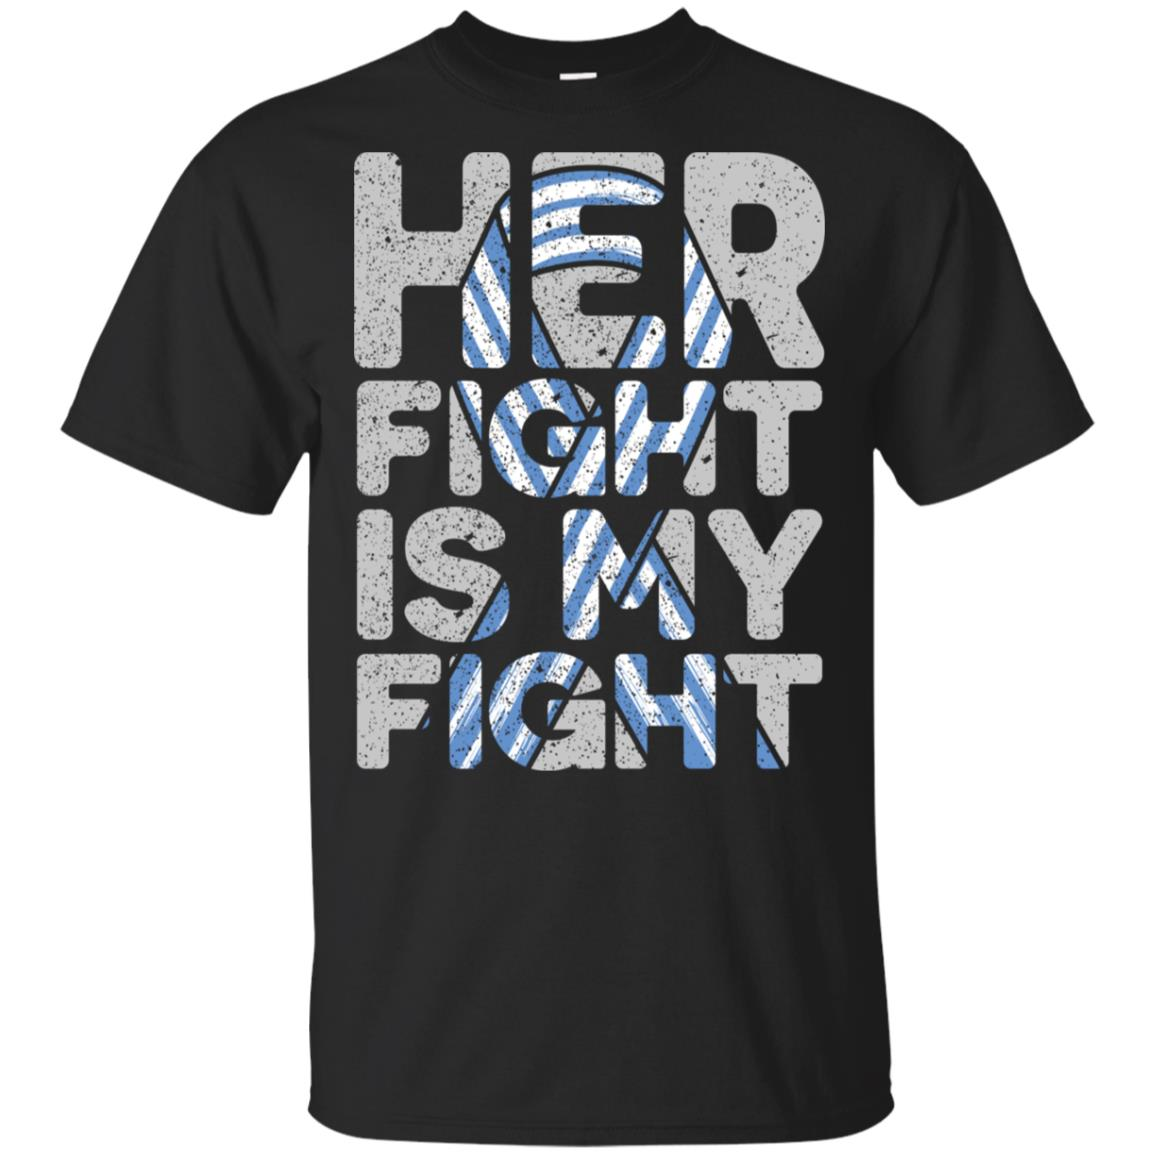 Her Fight is My Fight Als Awareness Unisex Short Sleeve